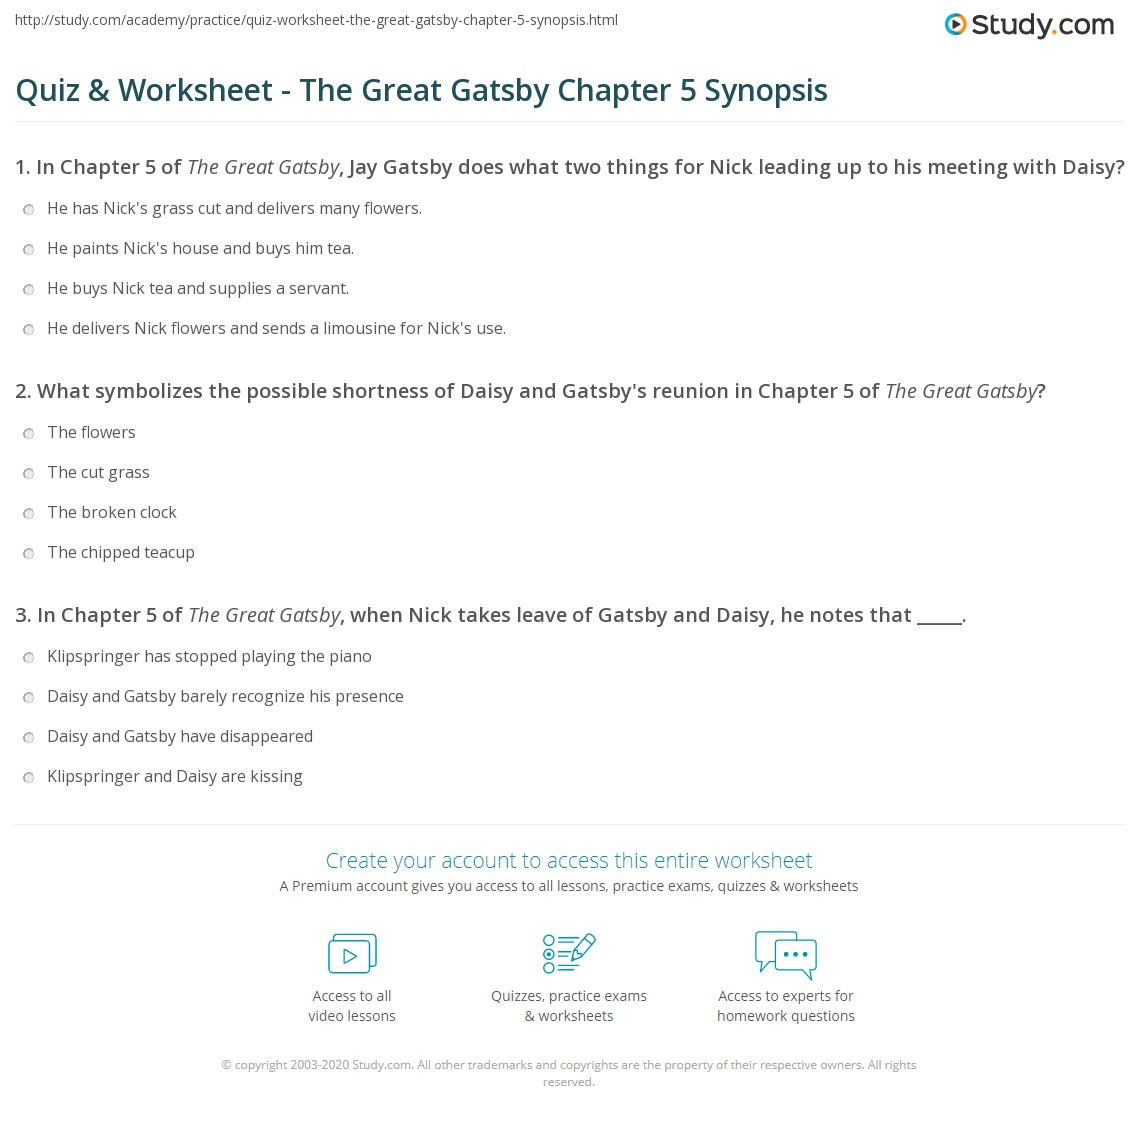 essay for the great gatsby the great gatsby book report essay the  quiz worksheet the great gatsby chapter synopsis com print the great gatsby chapter 5 summary worksheet